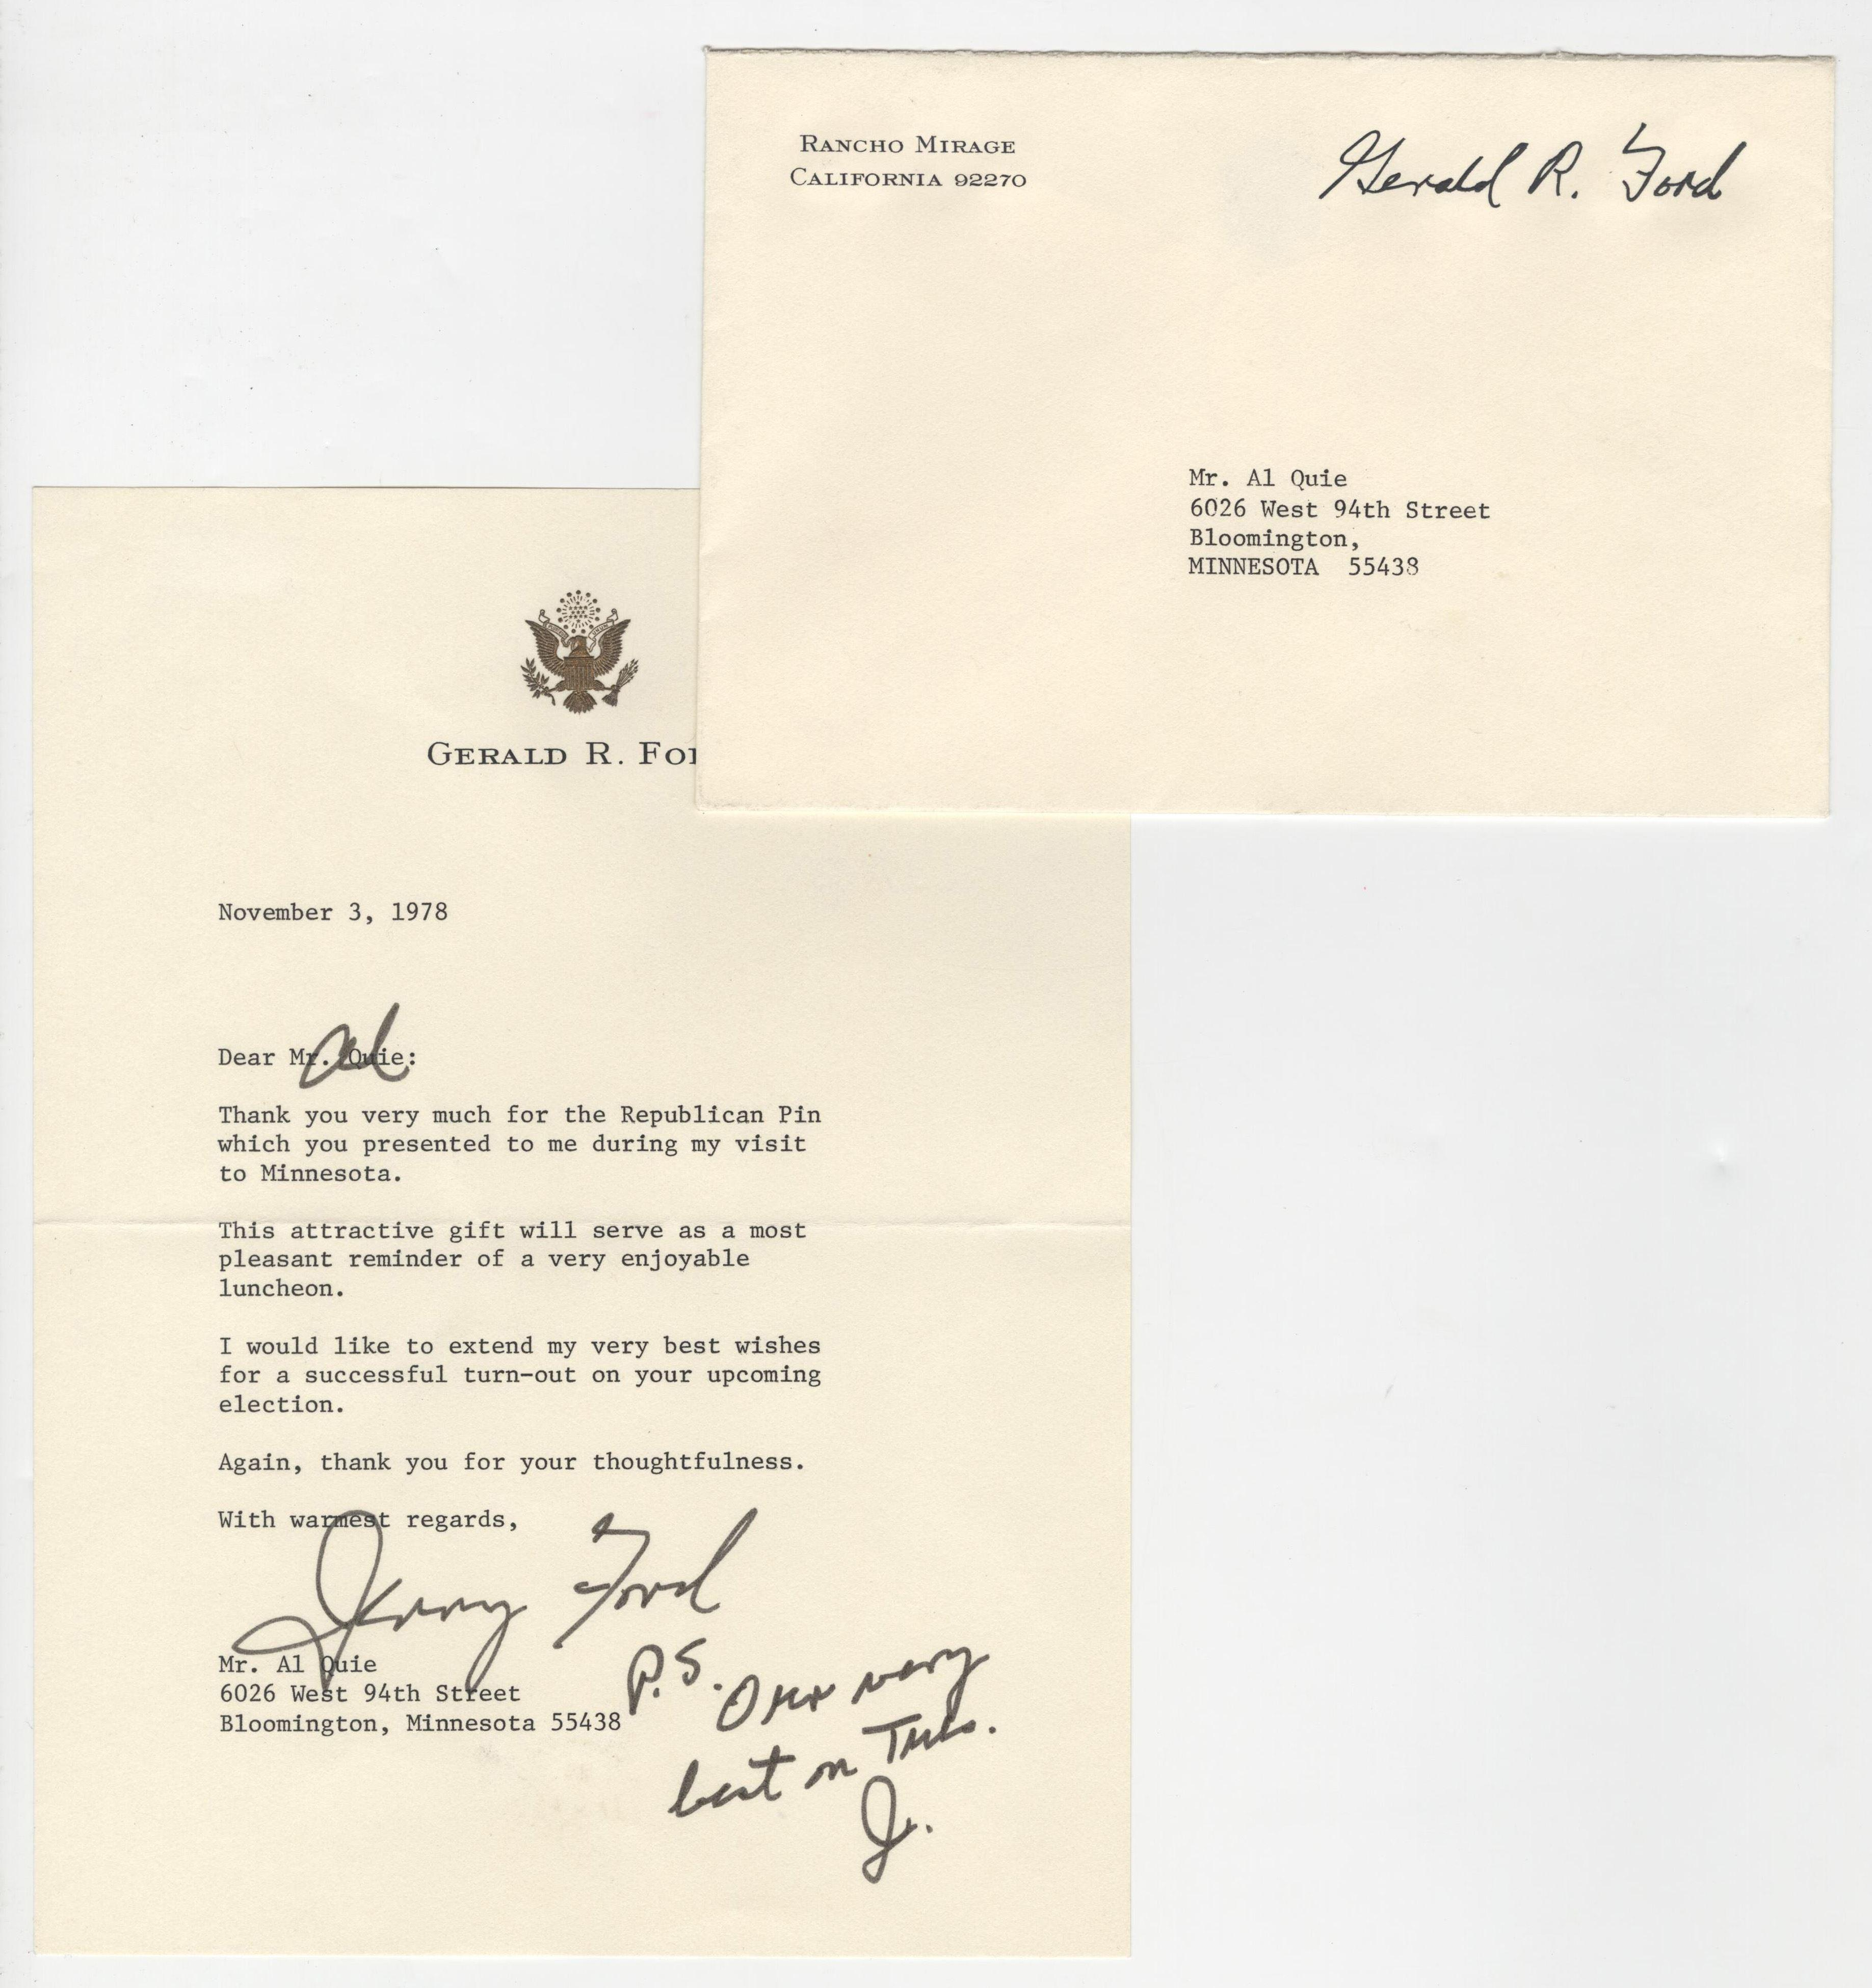 """Gerald Ford Signed Letter """"Thank you for the Republican Pin"""", On Presidential Letterhead"""